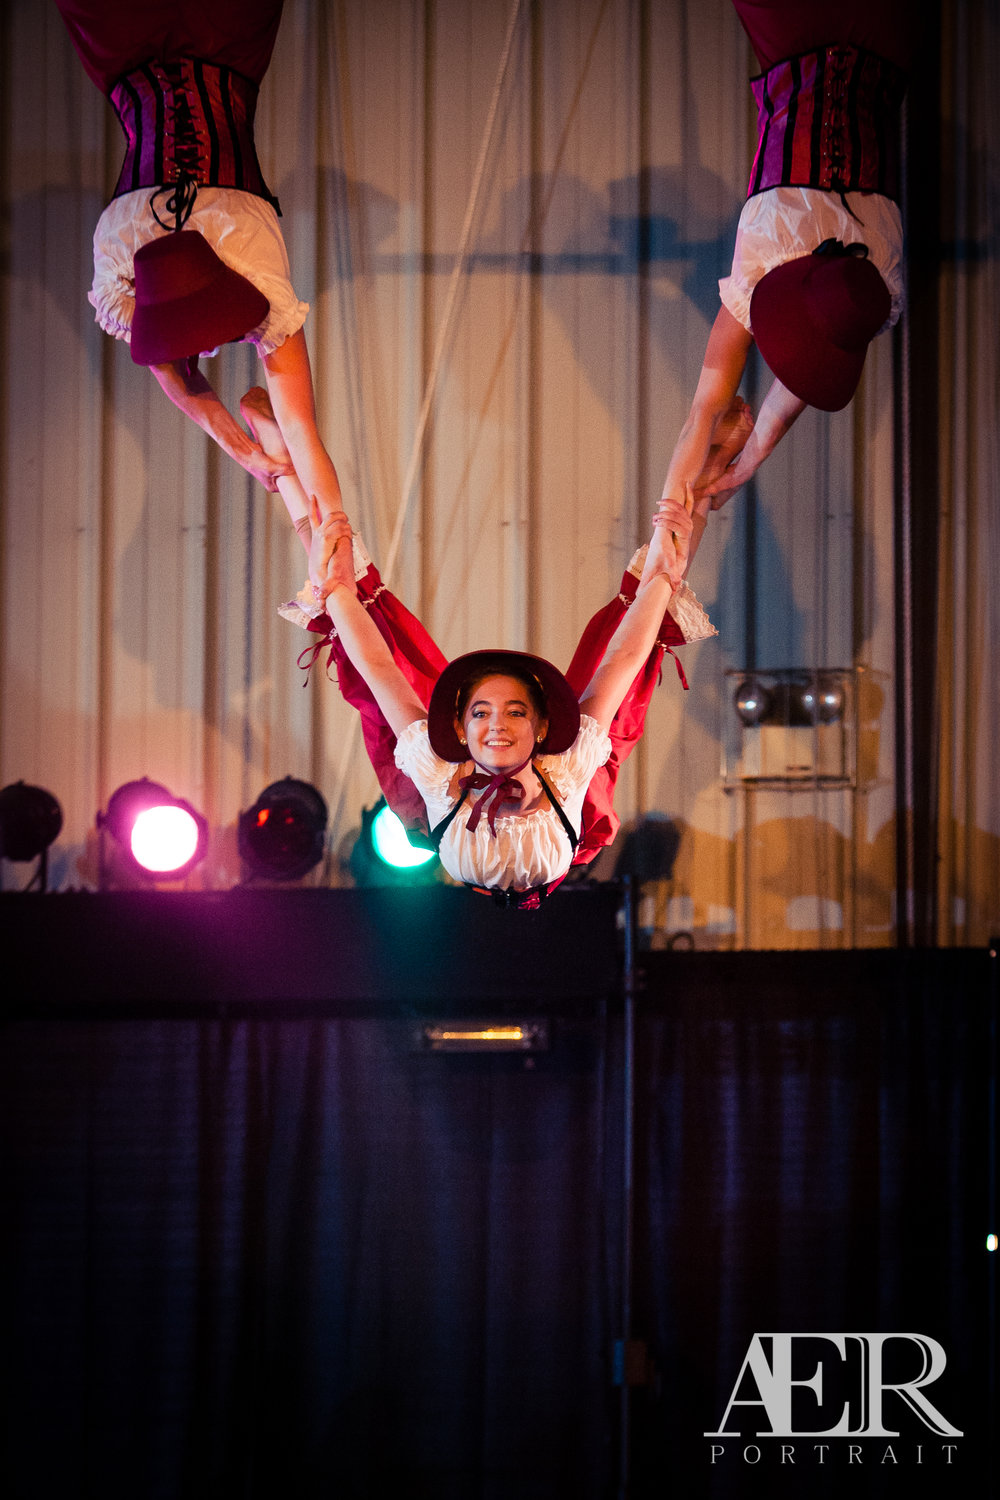 Louisville Performing Arts Photography - Turners Circus - AER Portrait 4